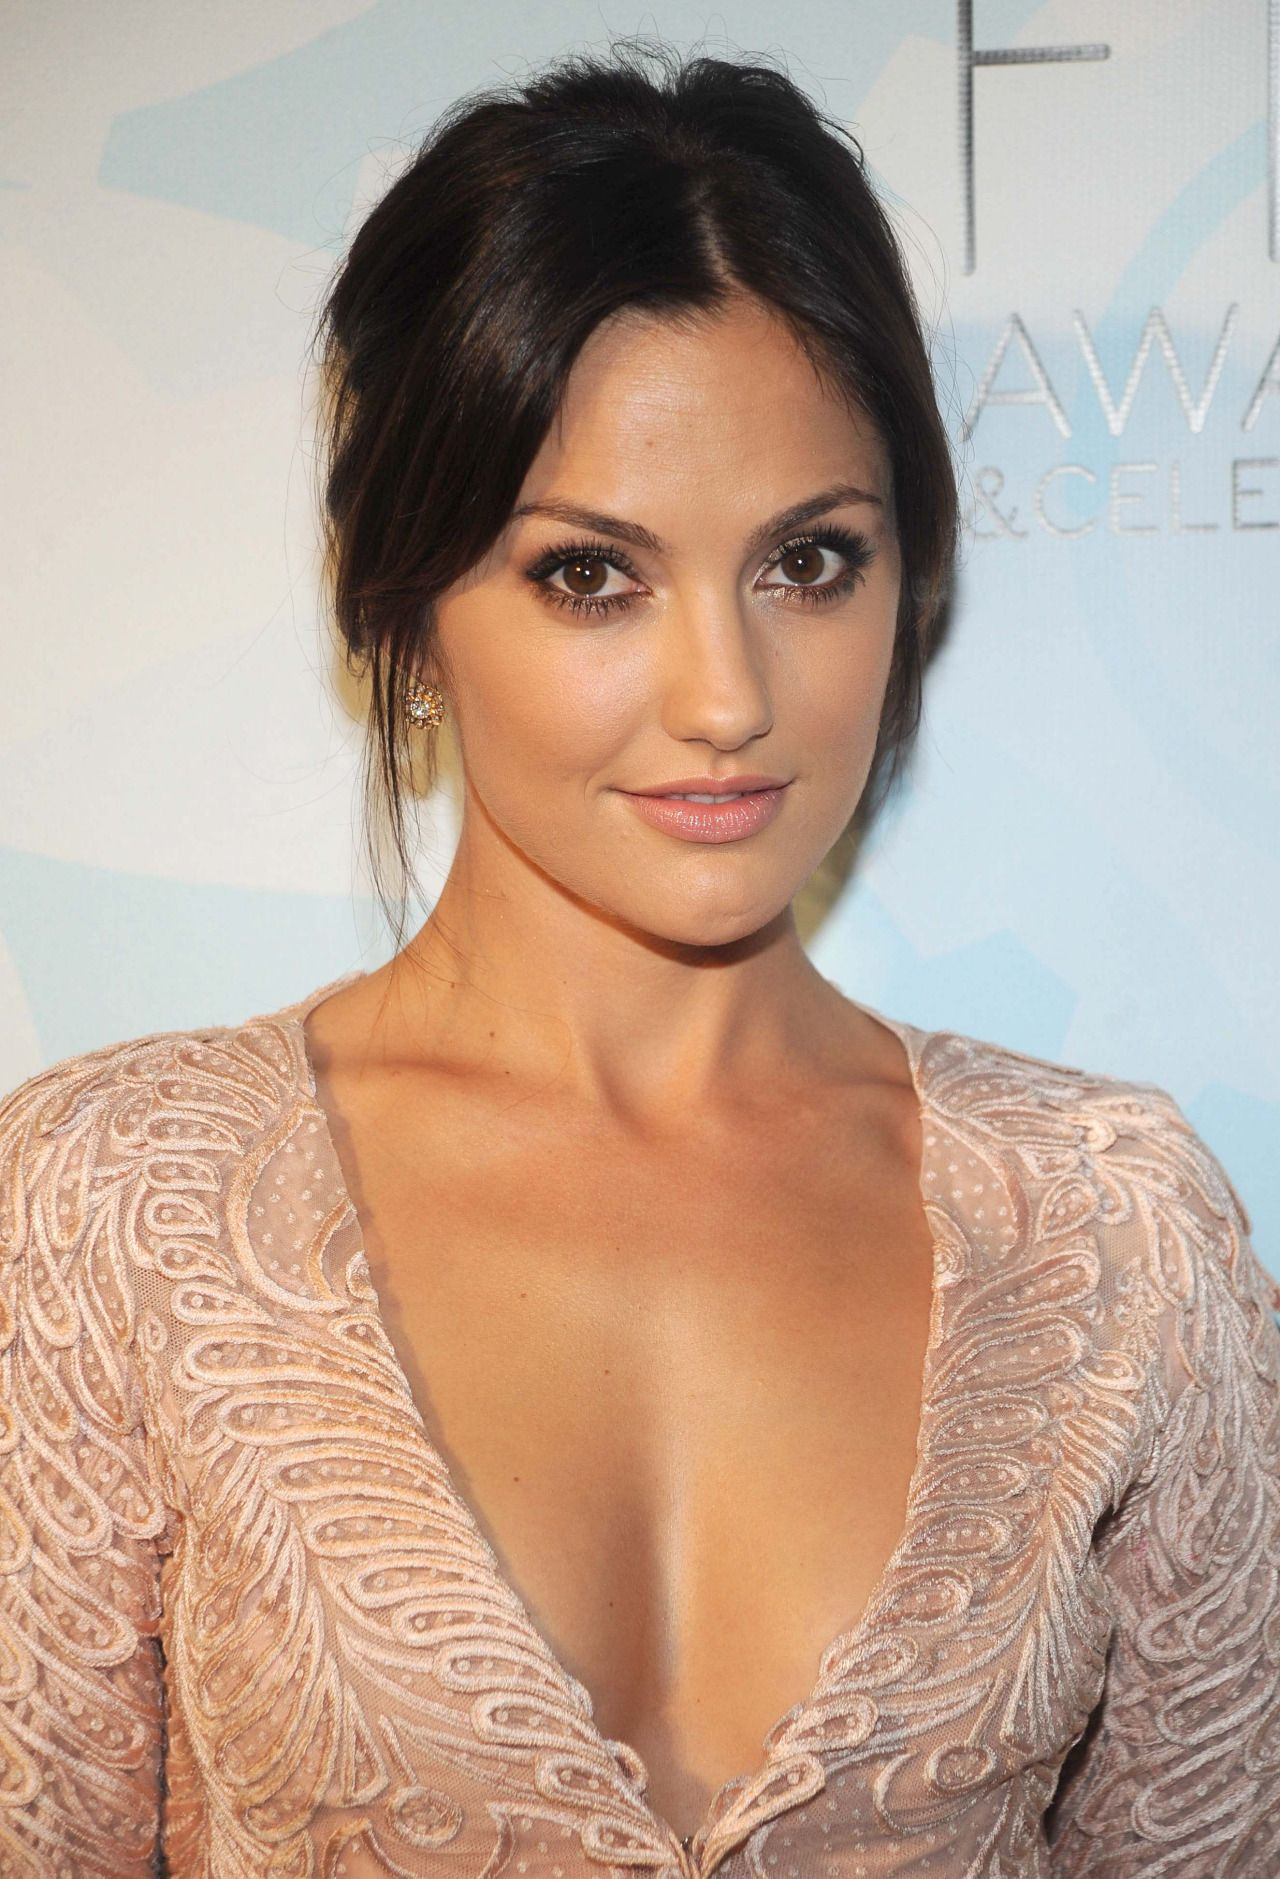 Cleavage Minka Kelly naked (18 foto and video), Topless, Hot, Instagram, bra 2017